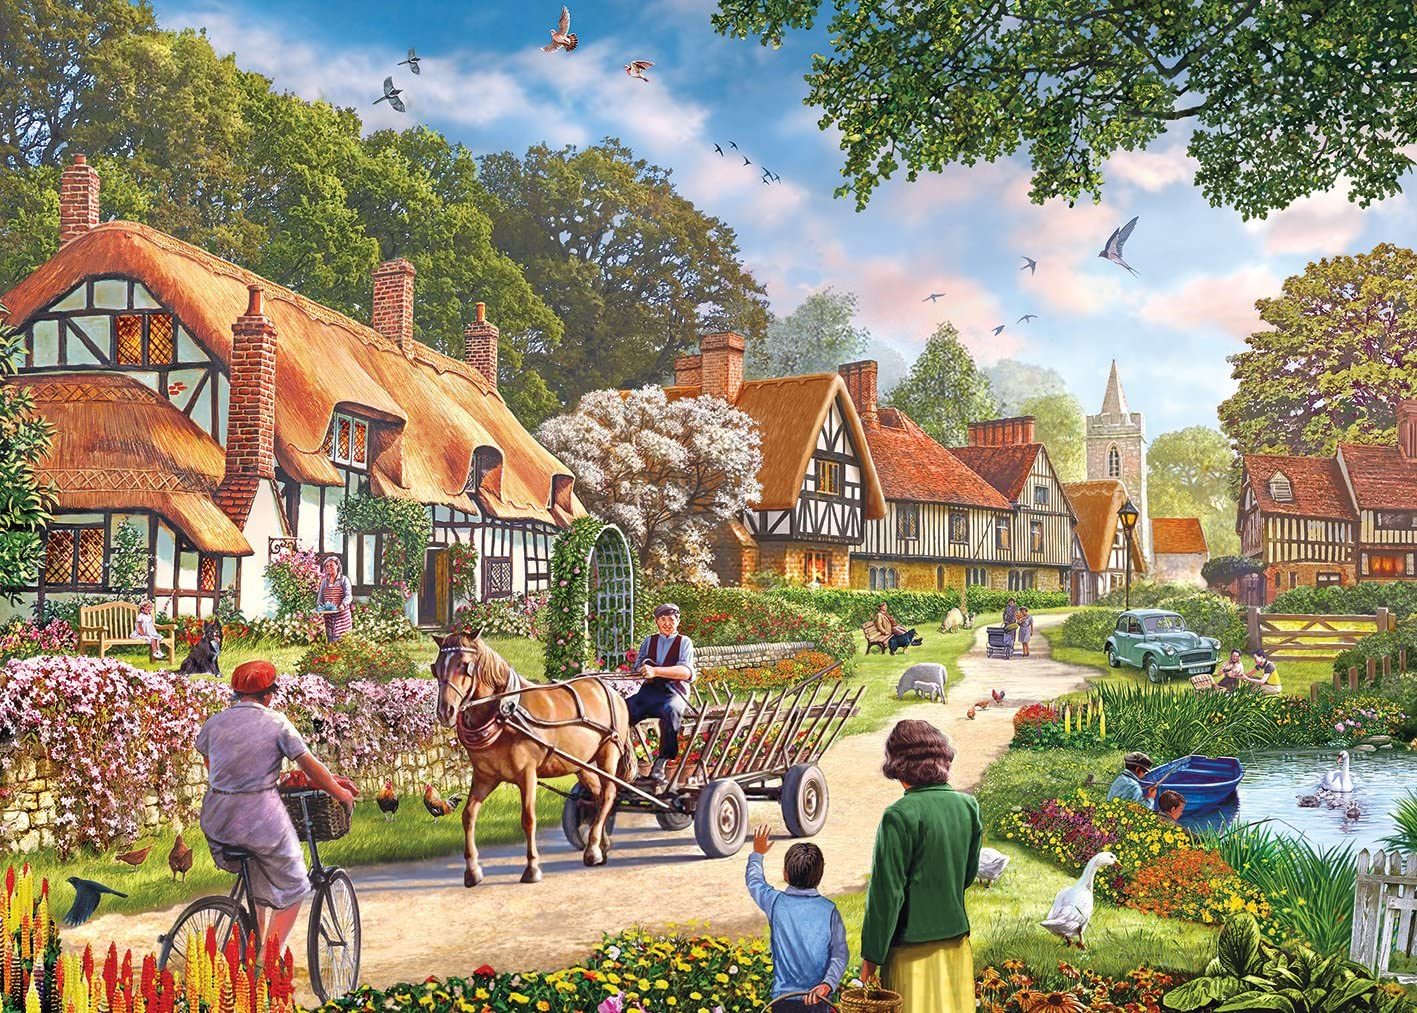 Gibsons Rural life Jigsaw Puzzle (1000